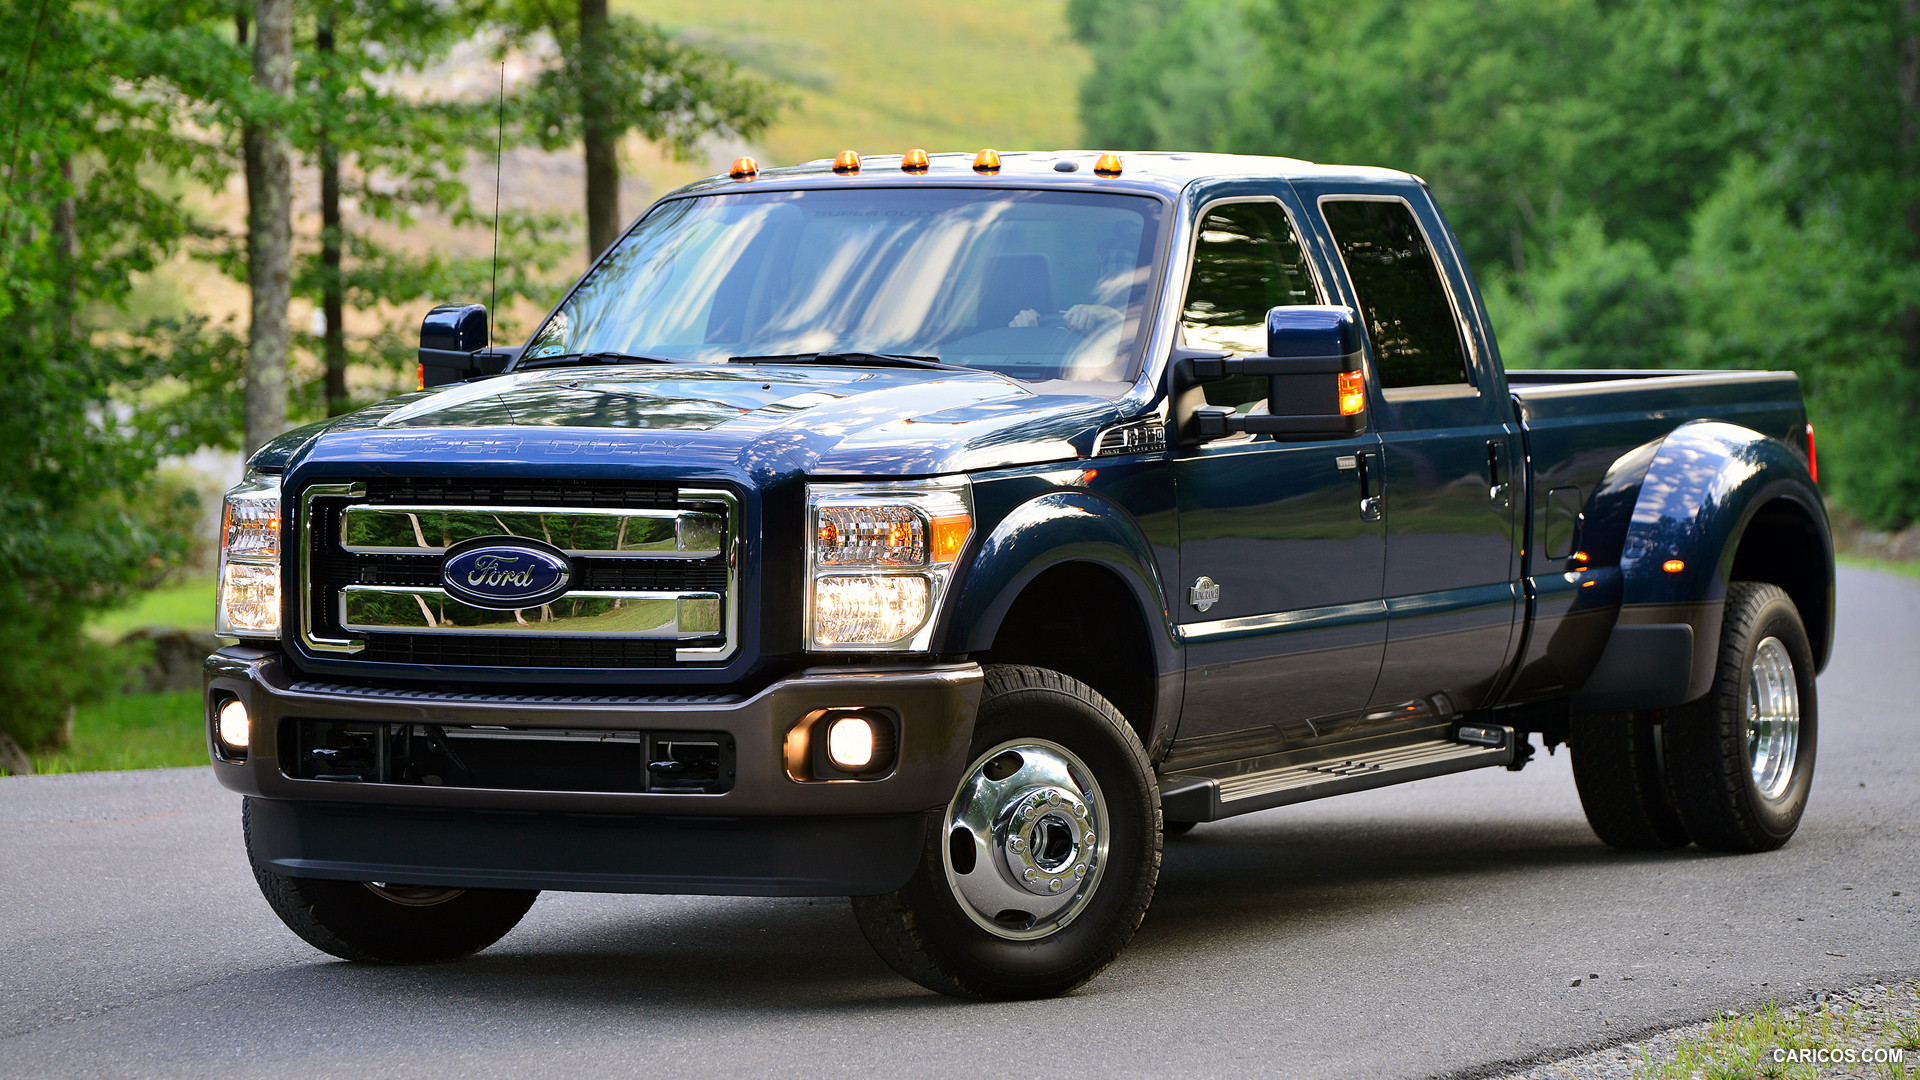 ford f series super duty photos photo gallery page 4. Black Bedroom Furniture Sets. Home Design Ideas